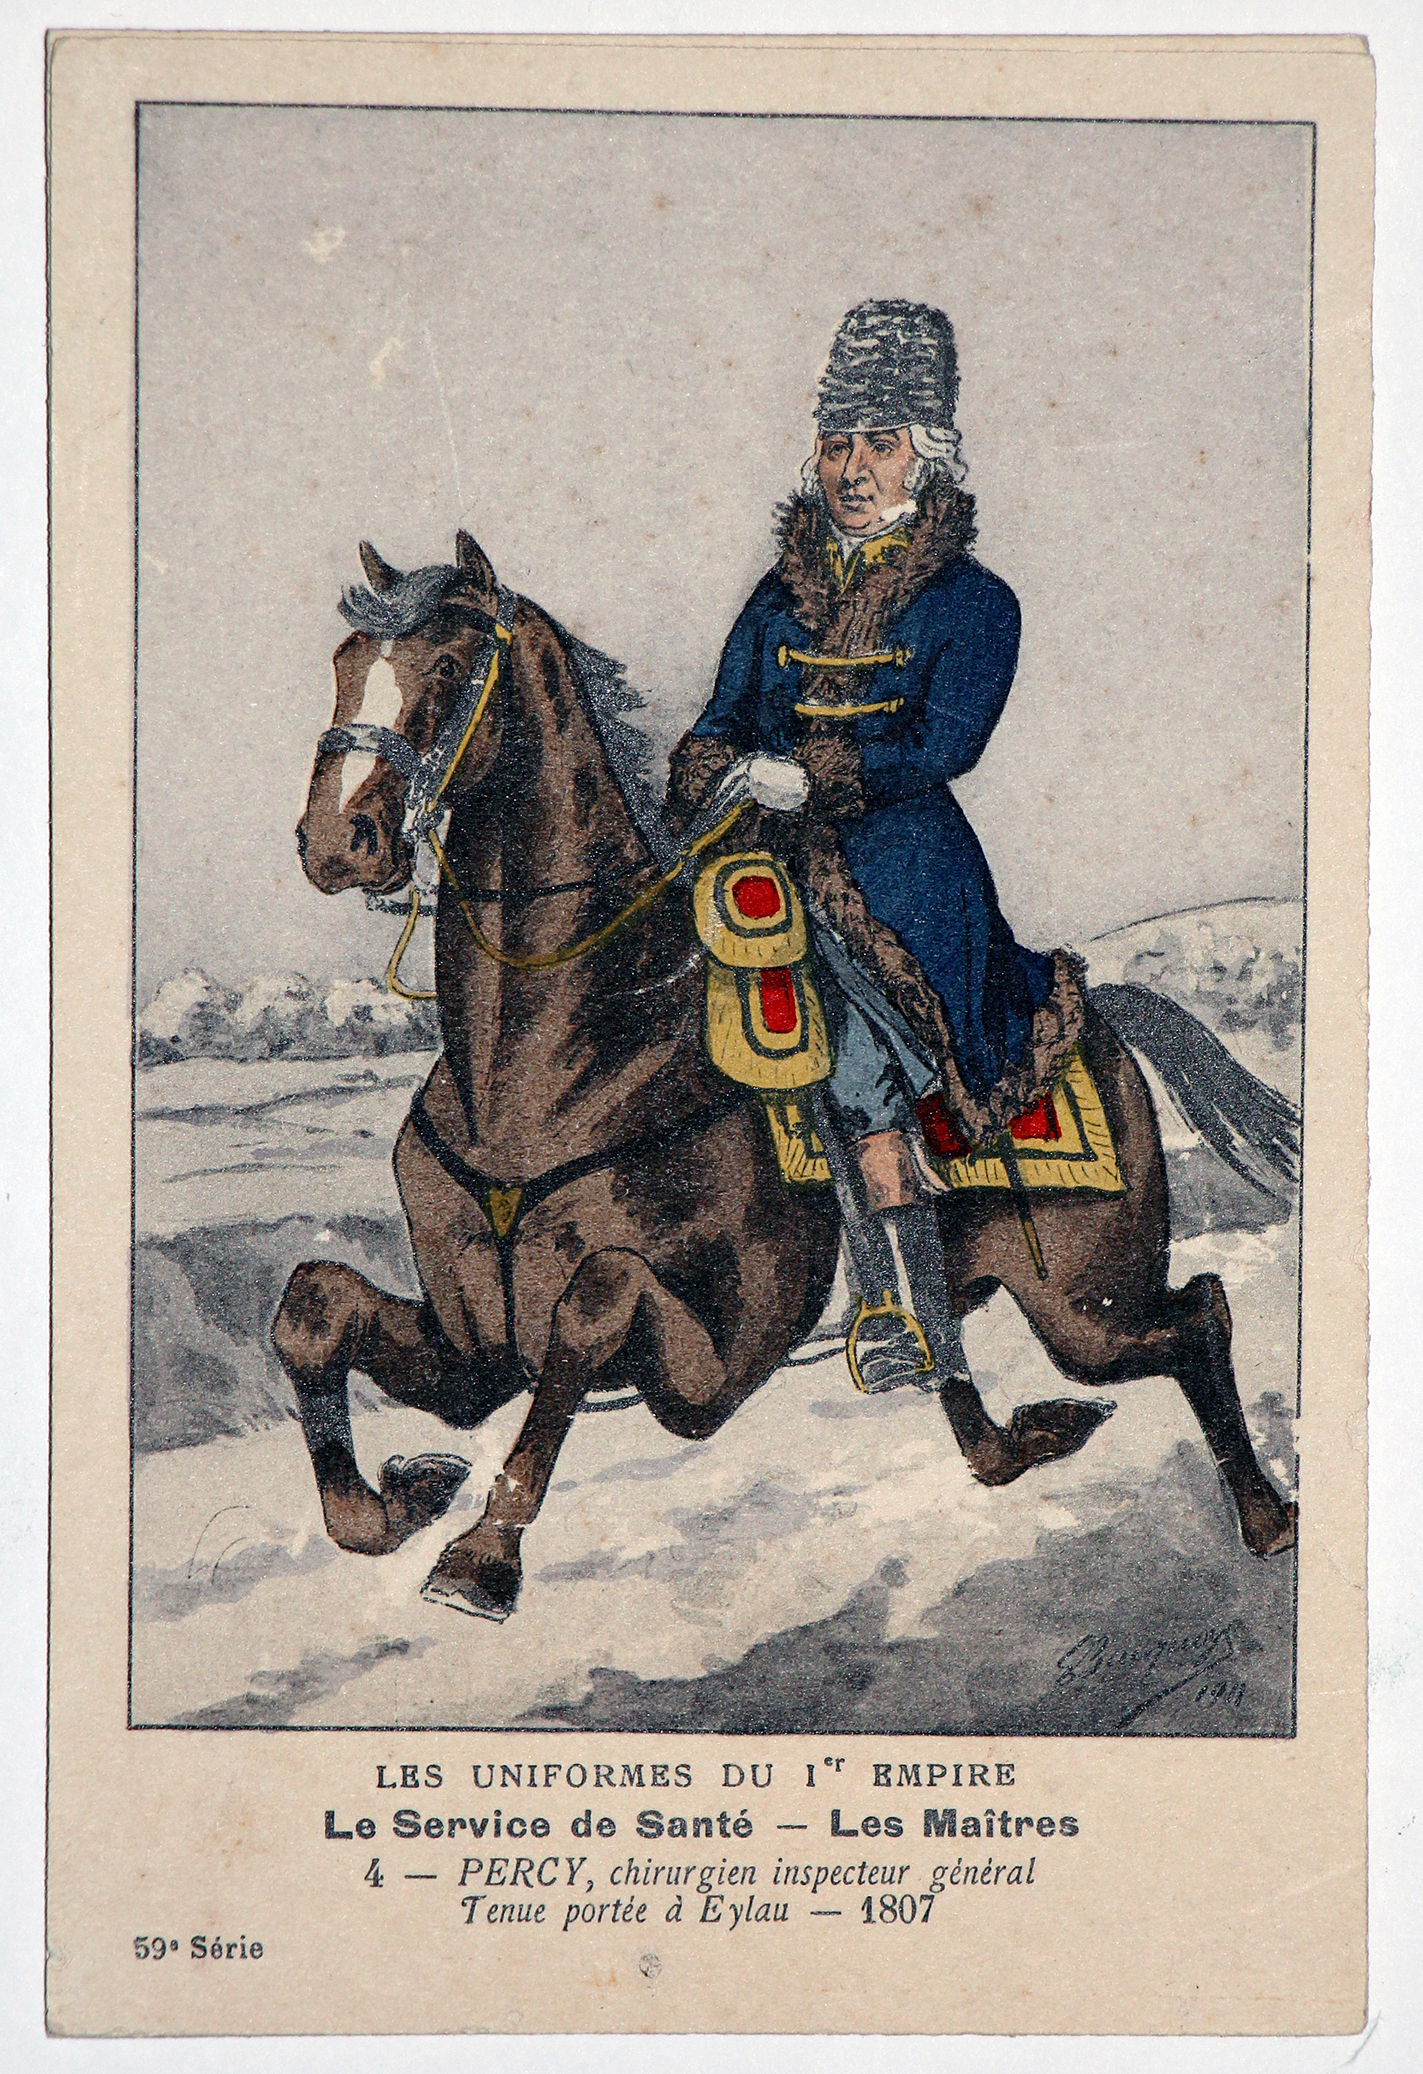 Carte Bucquoy - Les Uniformes du 1er Empire - Série 59 - Carte 4